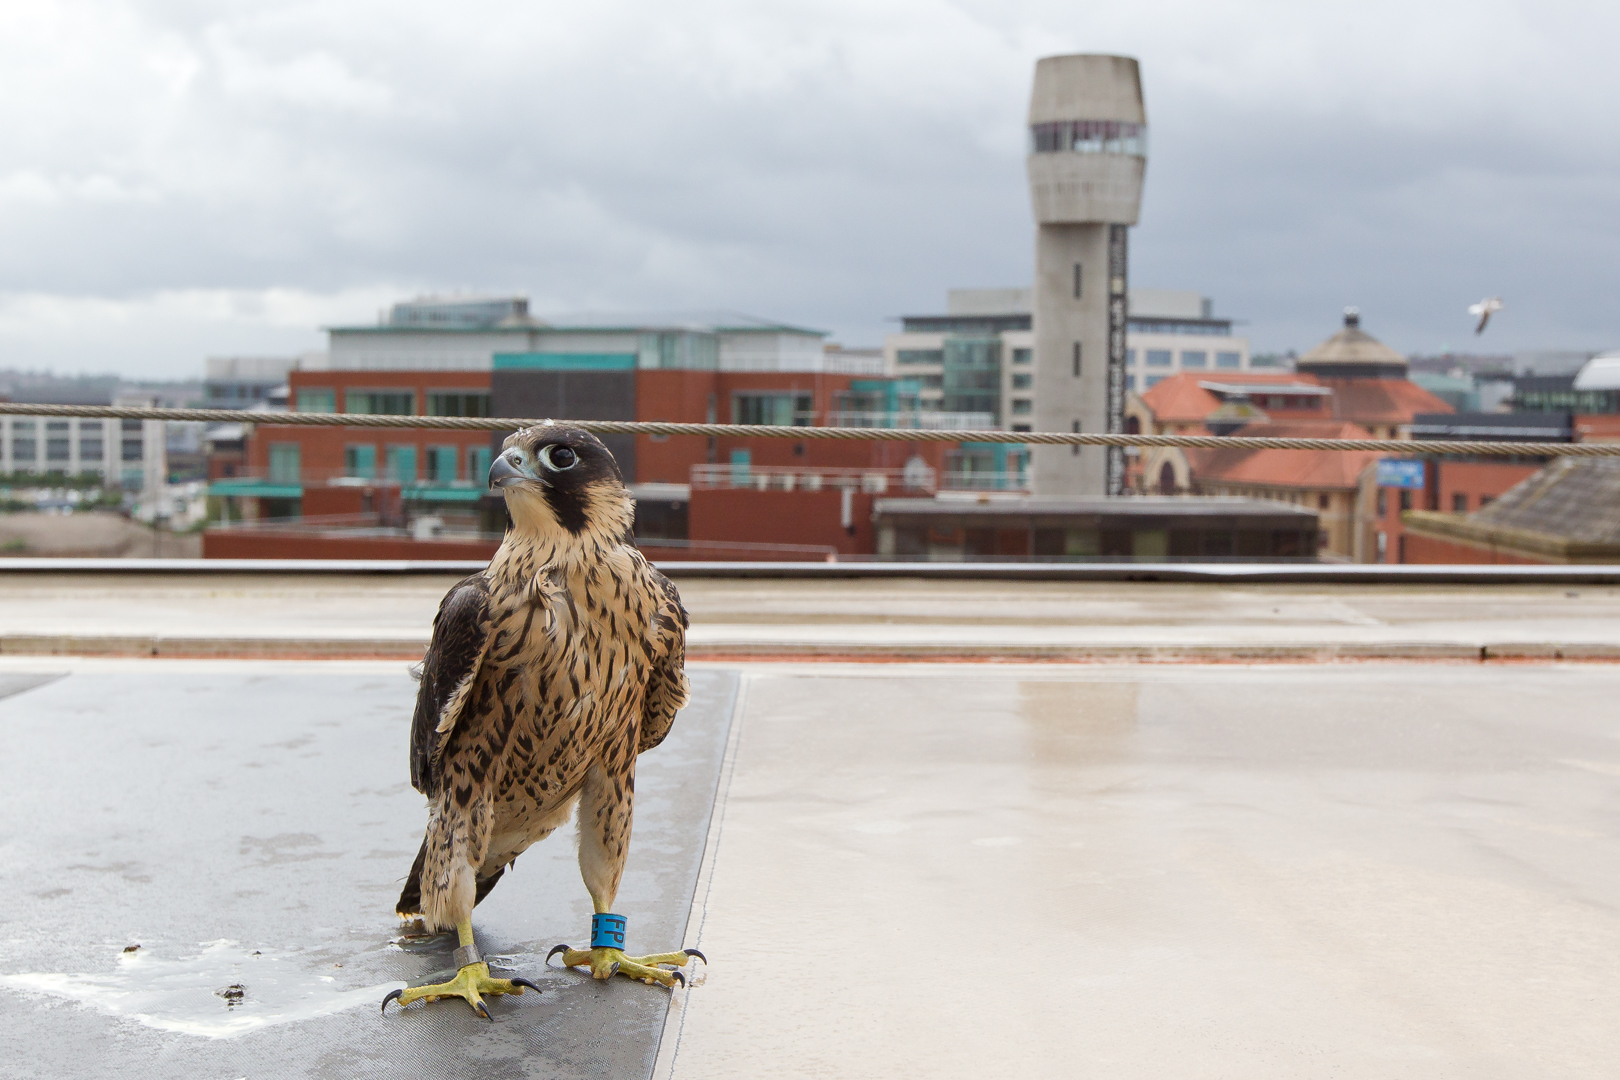 A juvenile peregrine falcon preparing to fly following a near drowning experience.